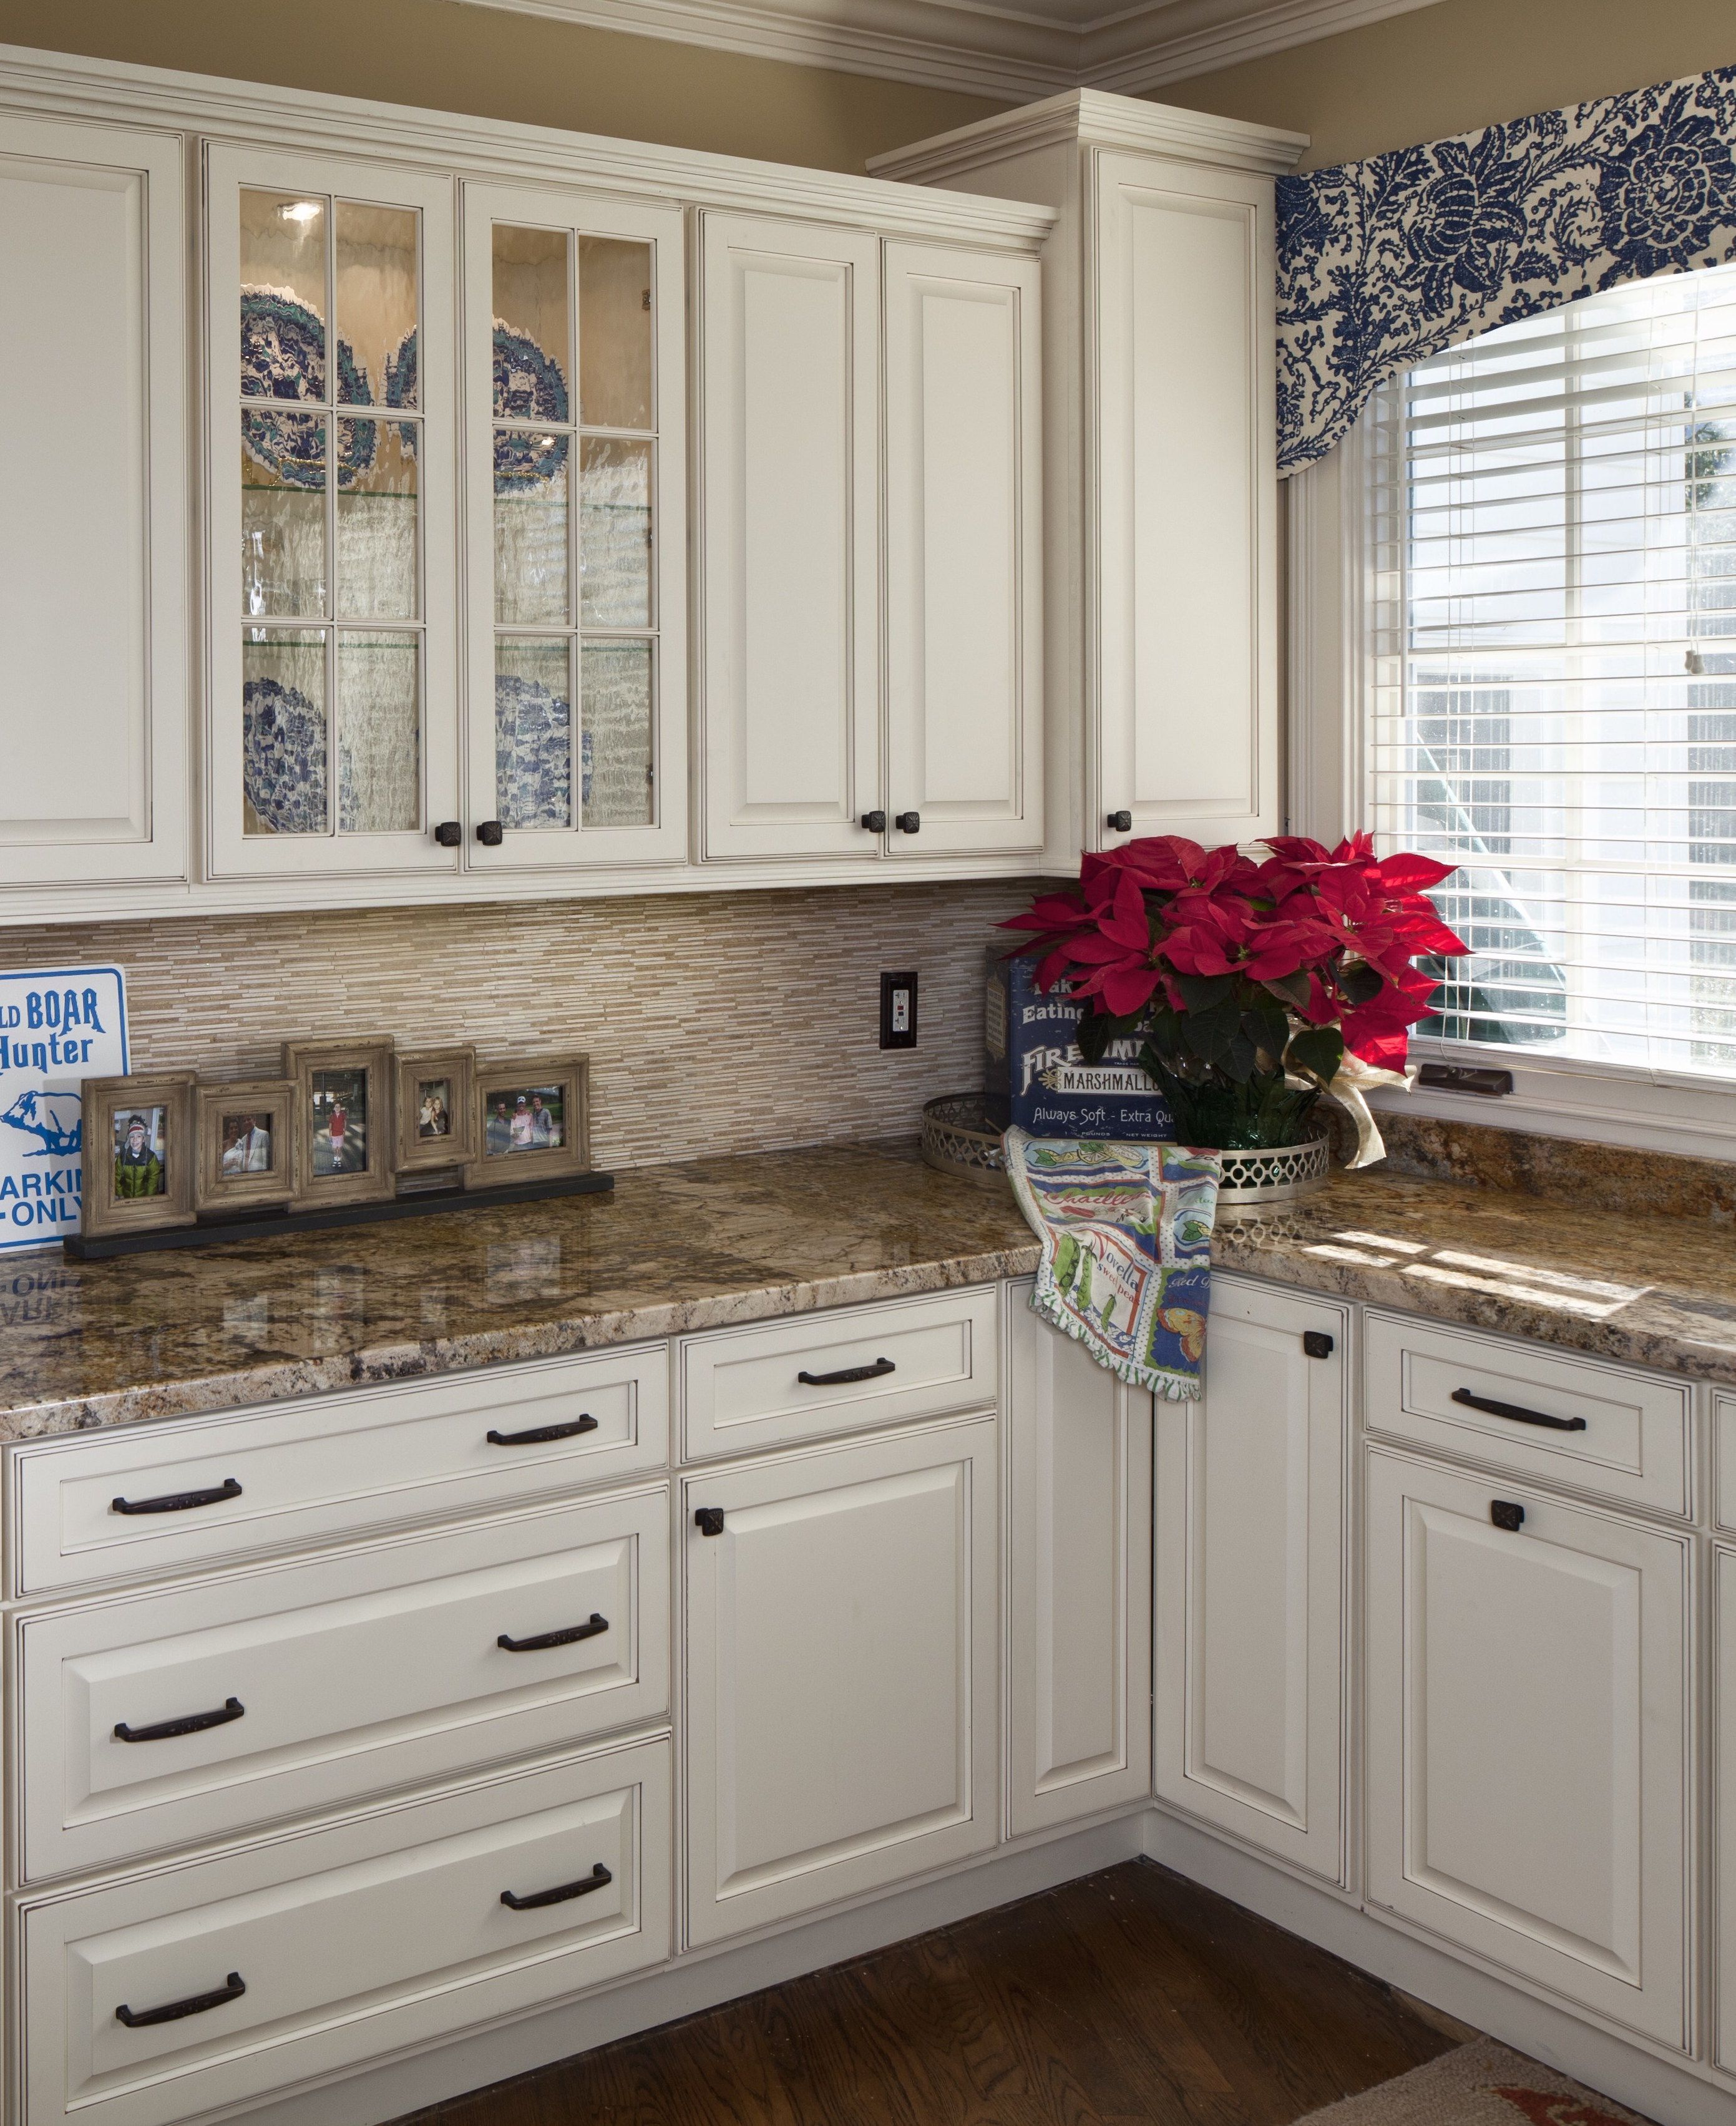 White Kitchen Design With Classic White Cabinets Bronze Hardware And A Marble Counter Country Kitchen White Kitchen Design Home Remodeling